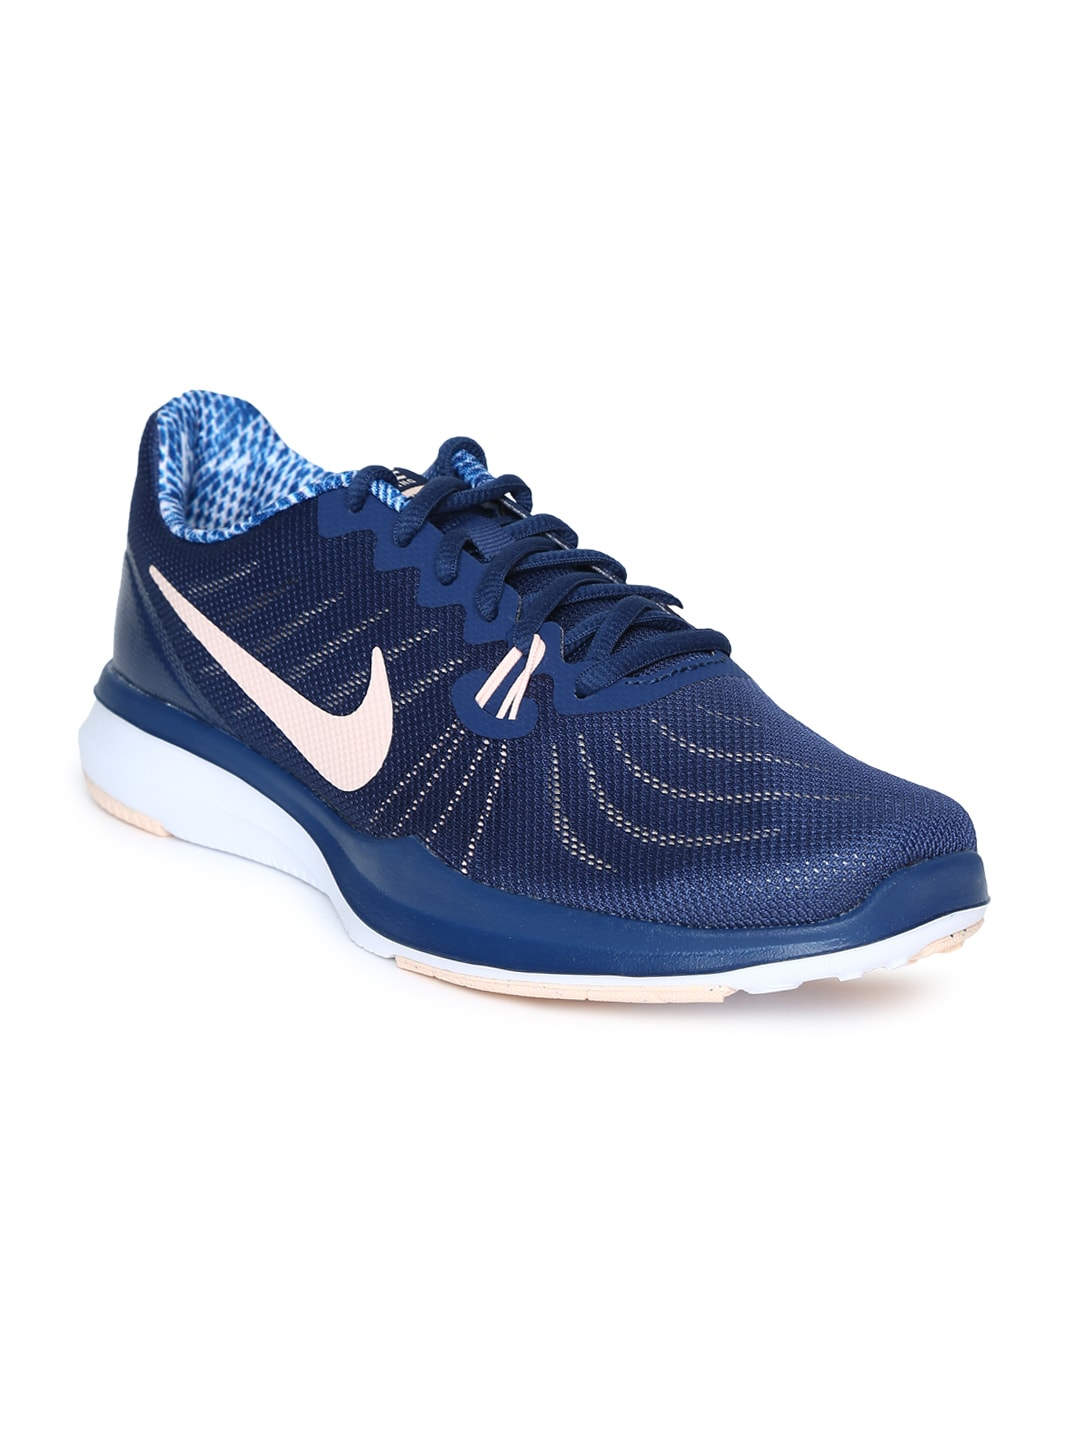 9716090a8d50 Women s Nike Shoes - Buy Nike Shoes for Women Online in India